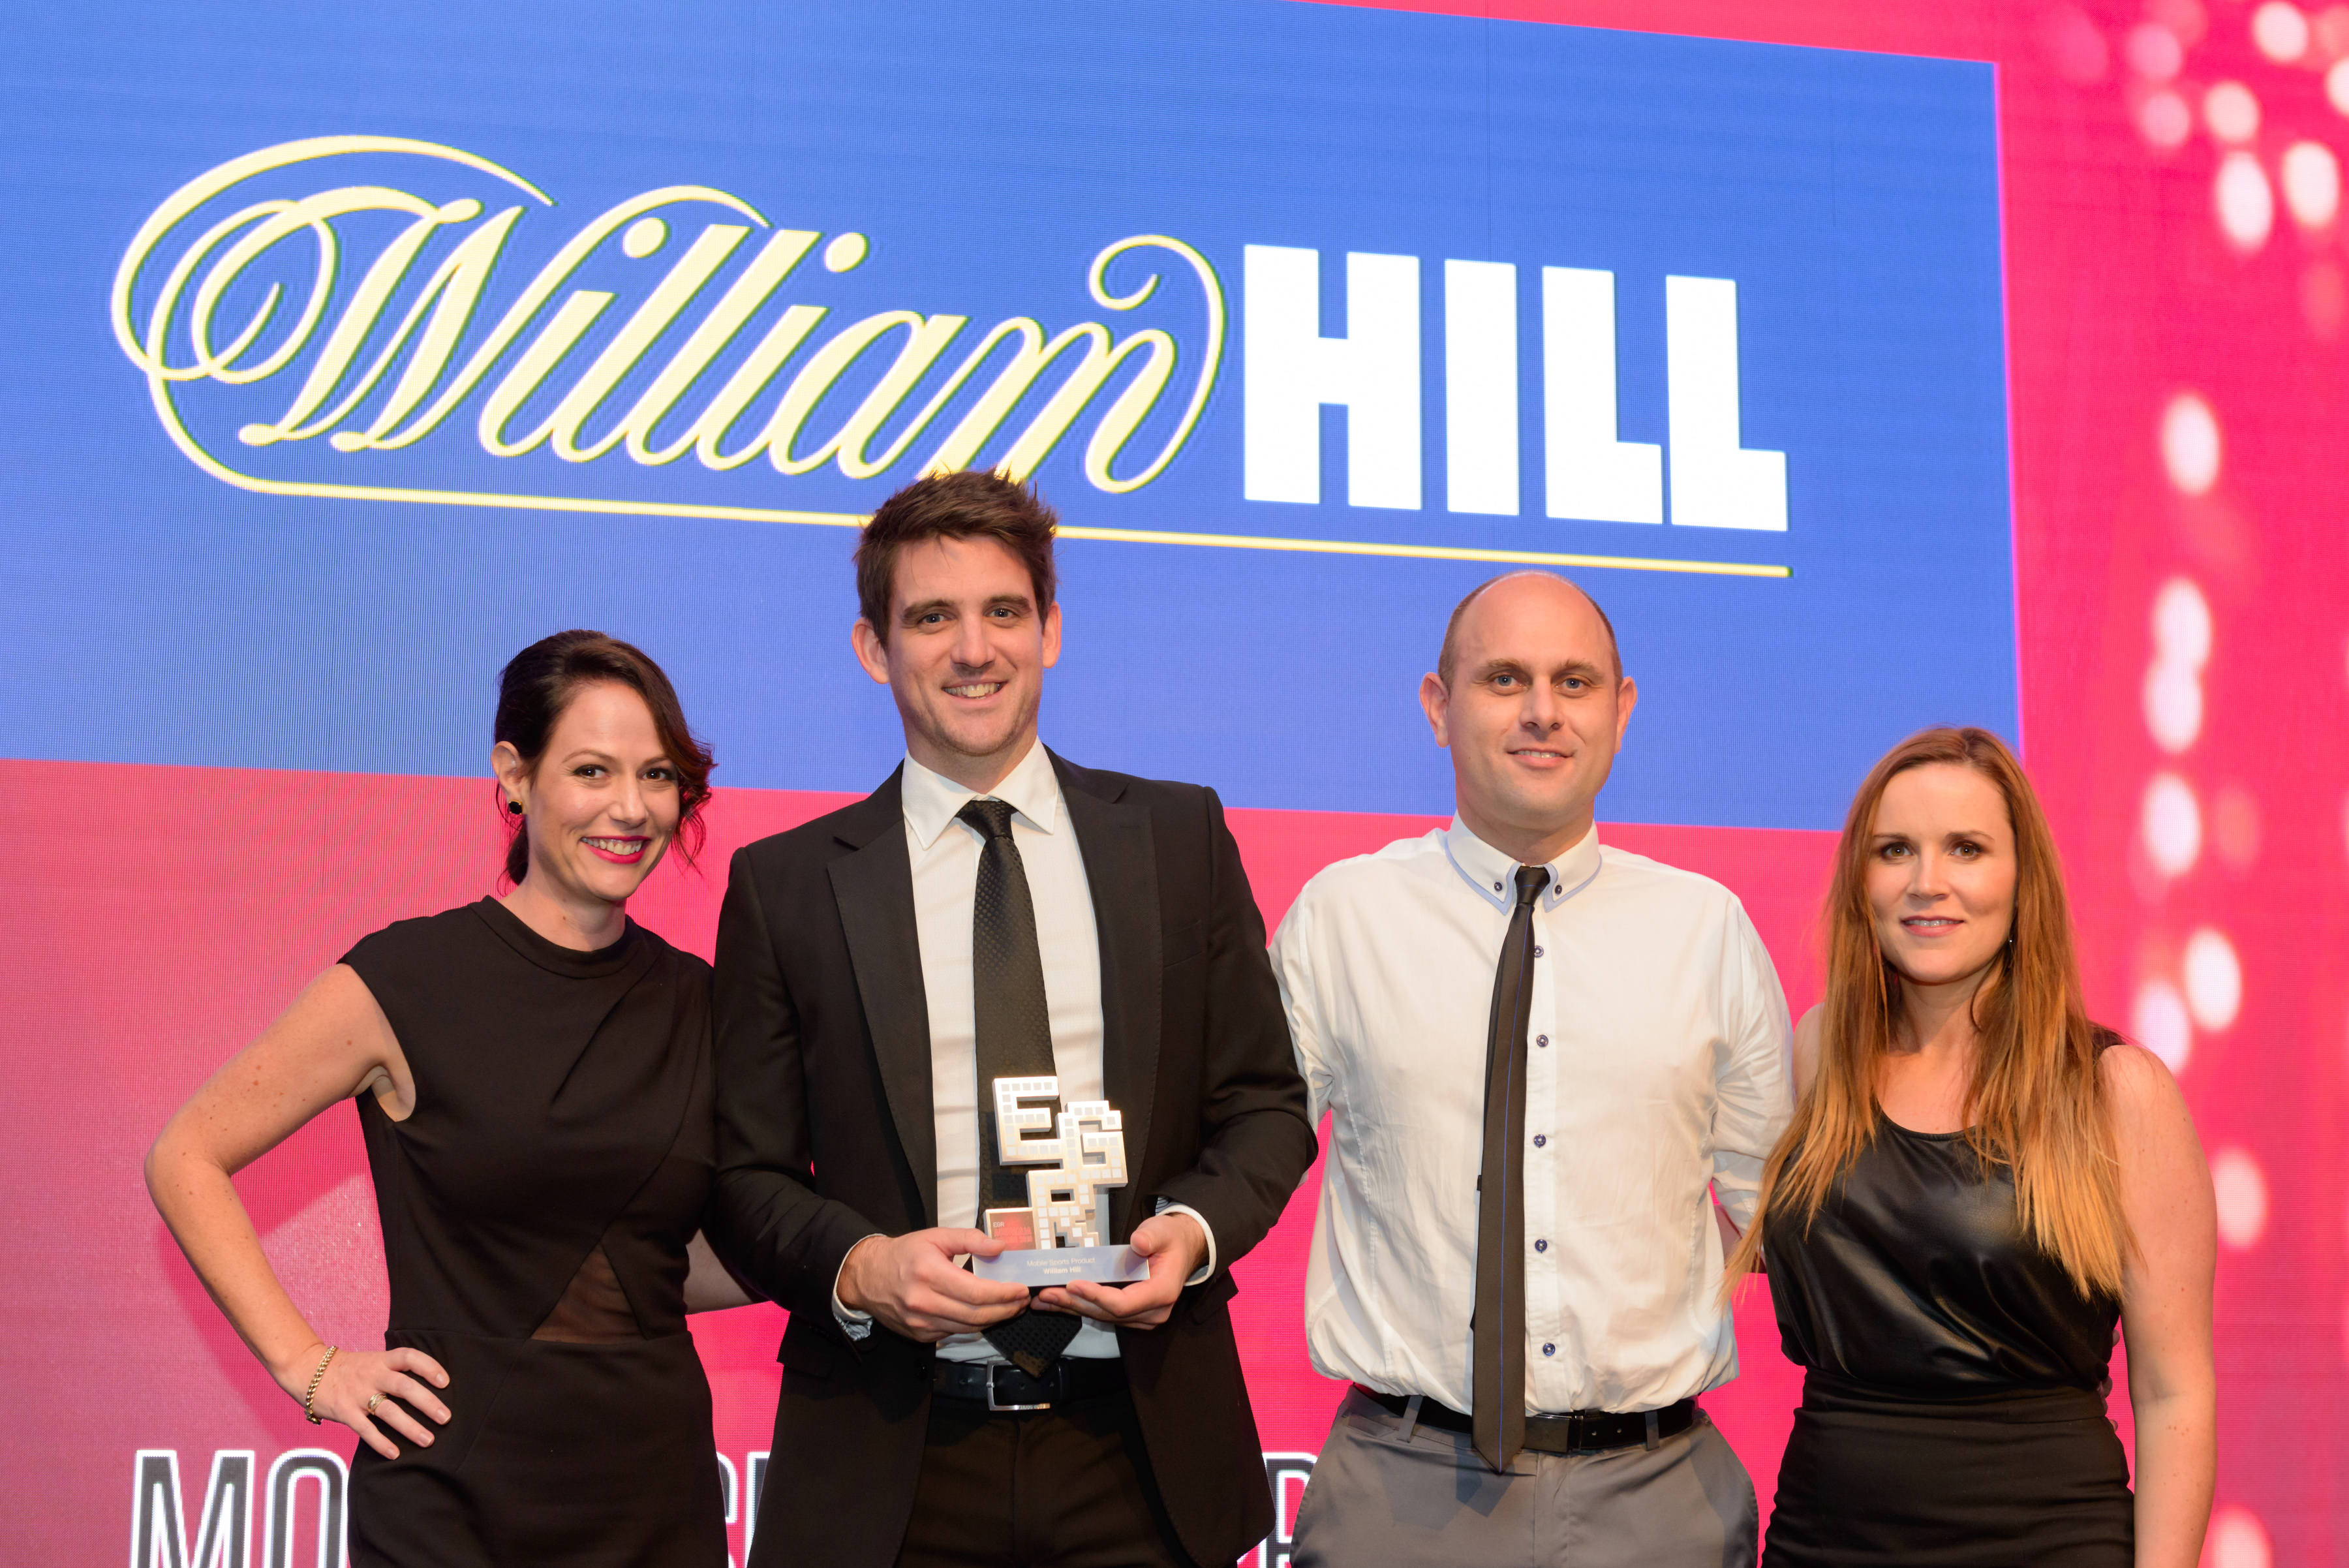 Mobile Sports Product, William Hill